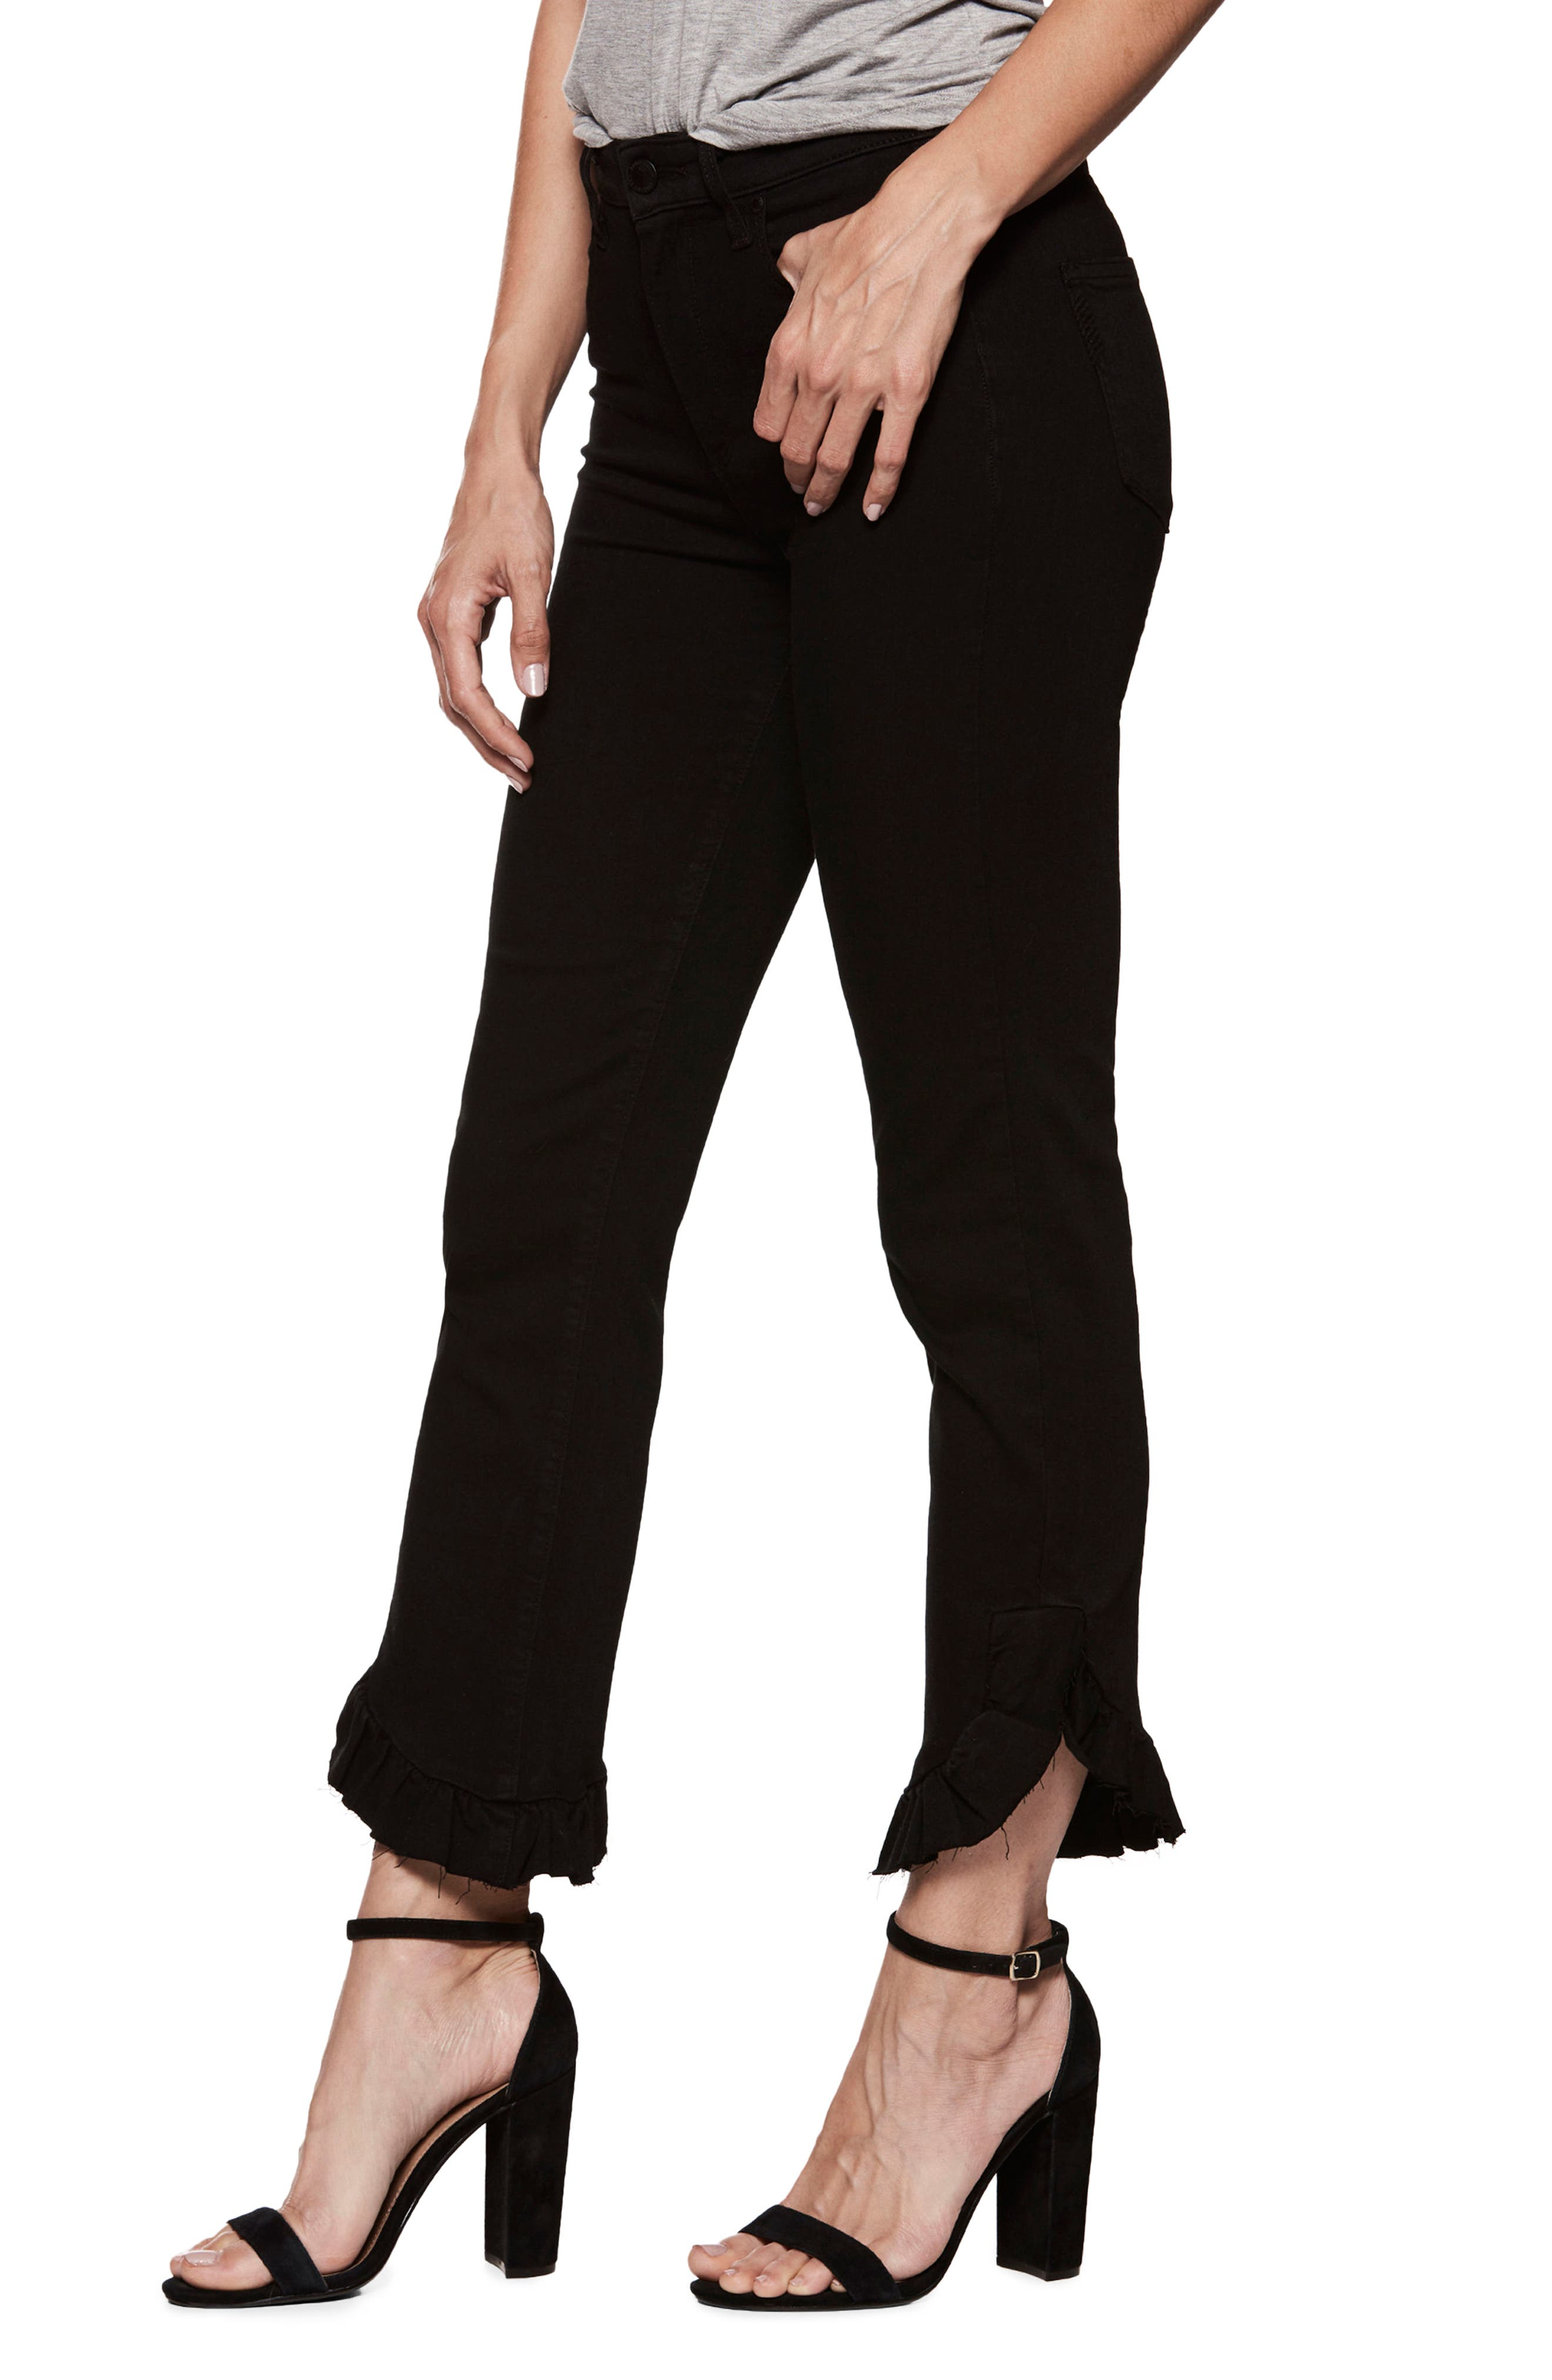 Transcend - Hoxton High Waist Ankle Straight Leg Jeans,                             Alternate thumbnail 3, color,                             Black Shadow